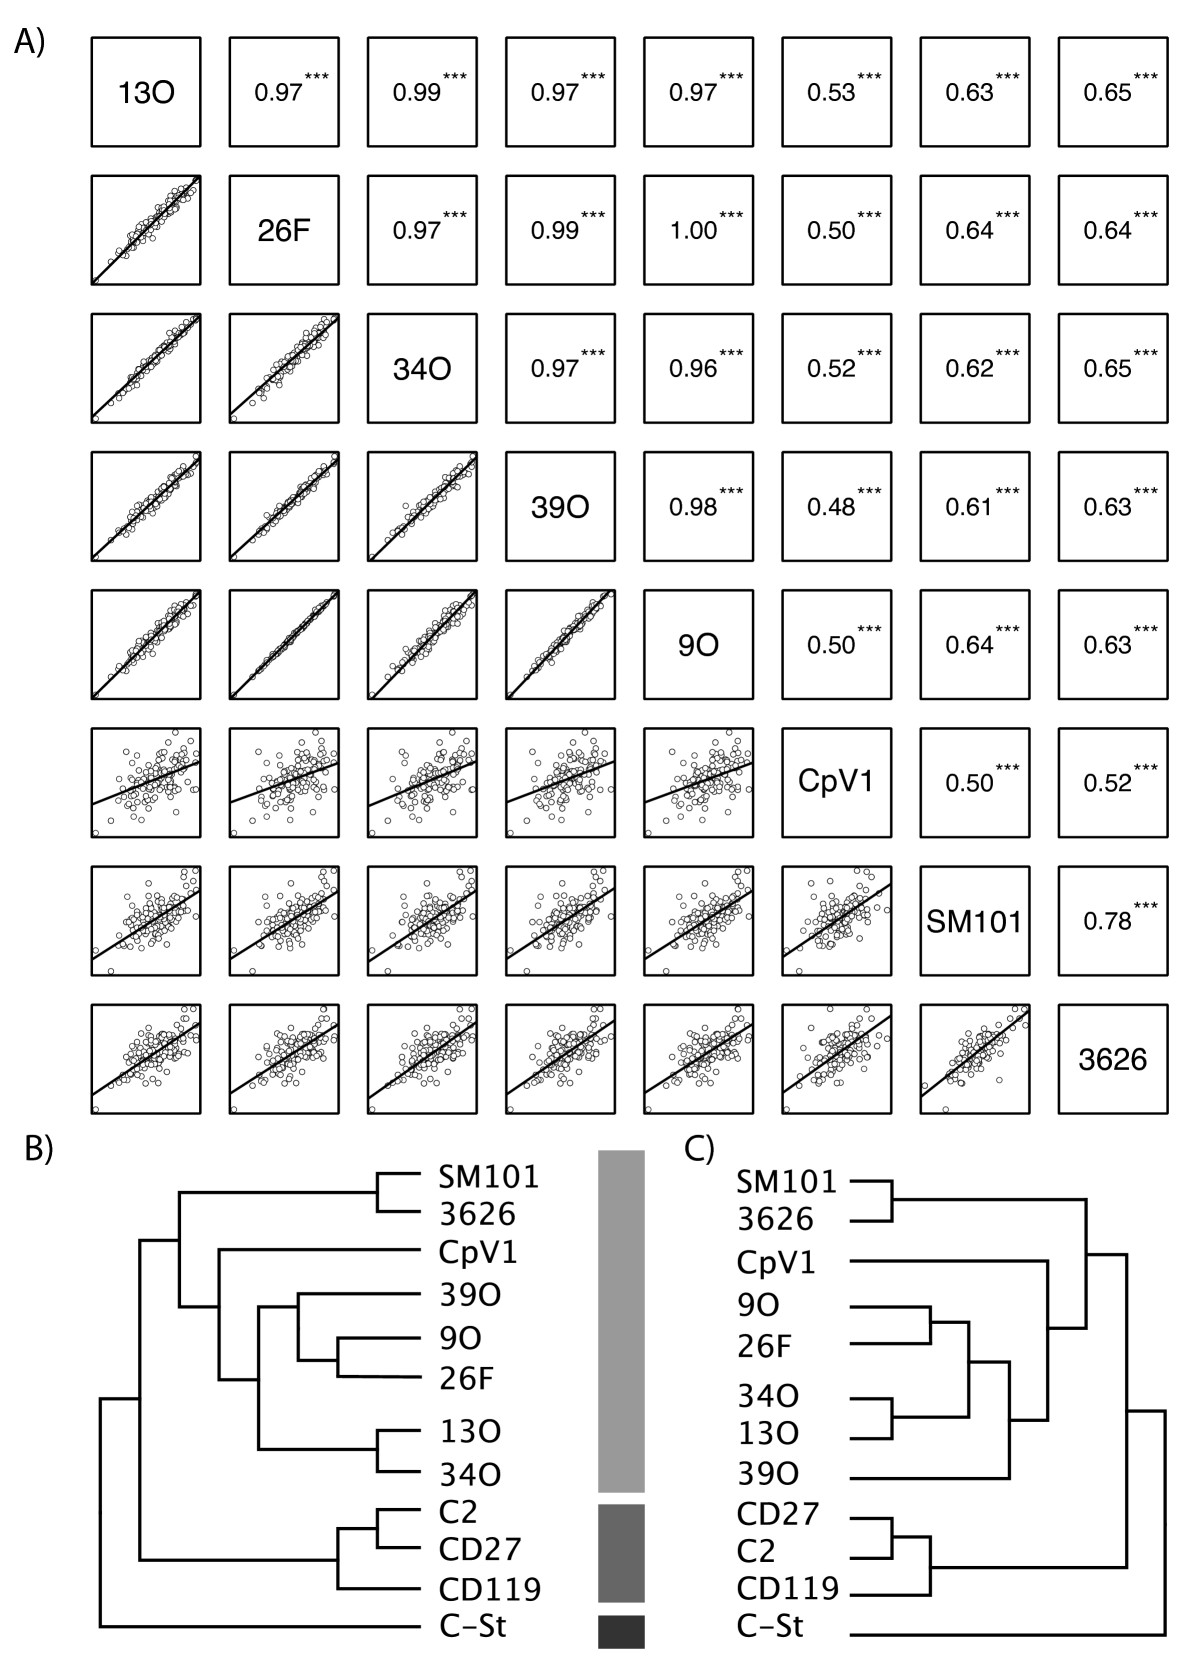 https://static-content.springer.com/image/art%3A10.1186%2F1471-2164-12-282/MediaObjects/12864_2011_Article_3391_Fig1_HTML.jpg